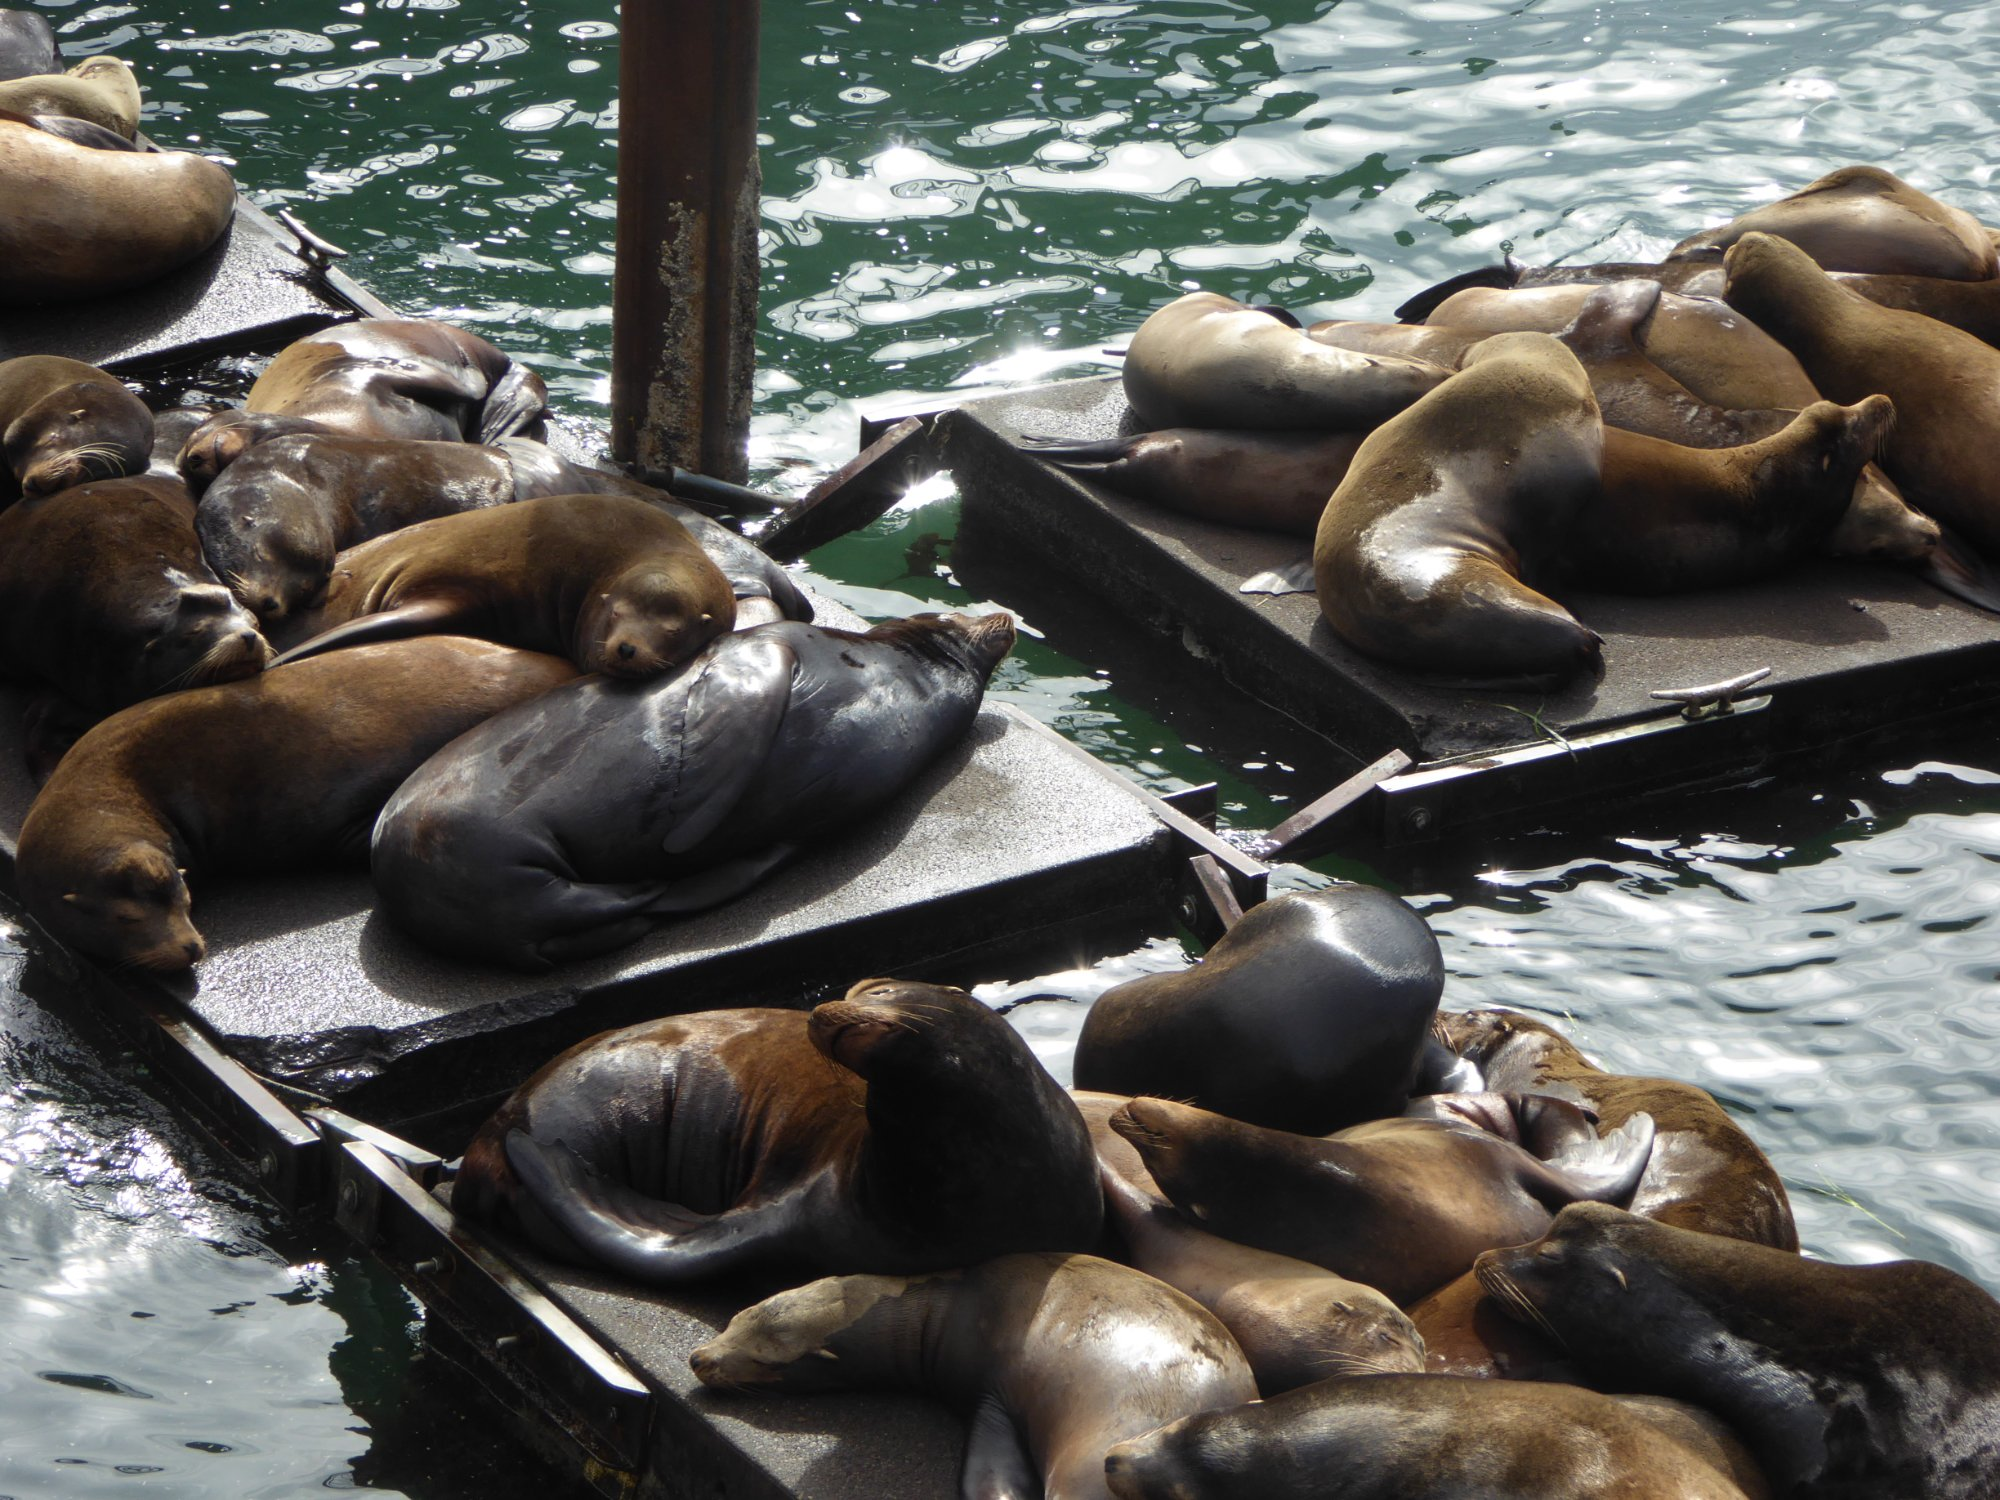 600 lb sea lion bulls on boat docks at Newport harbor